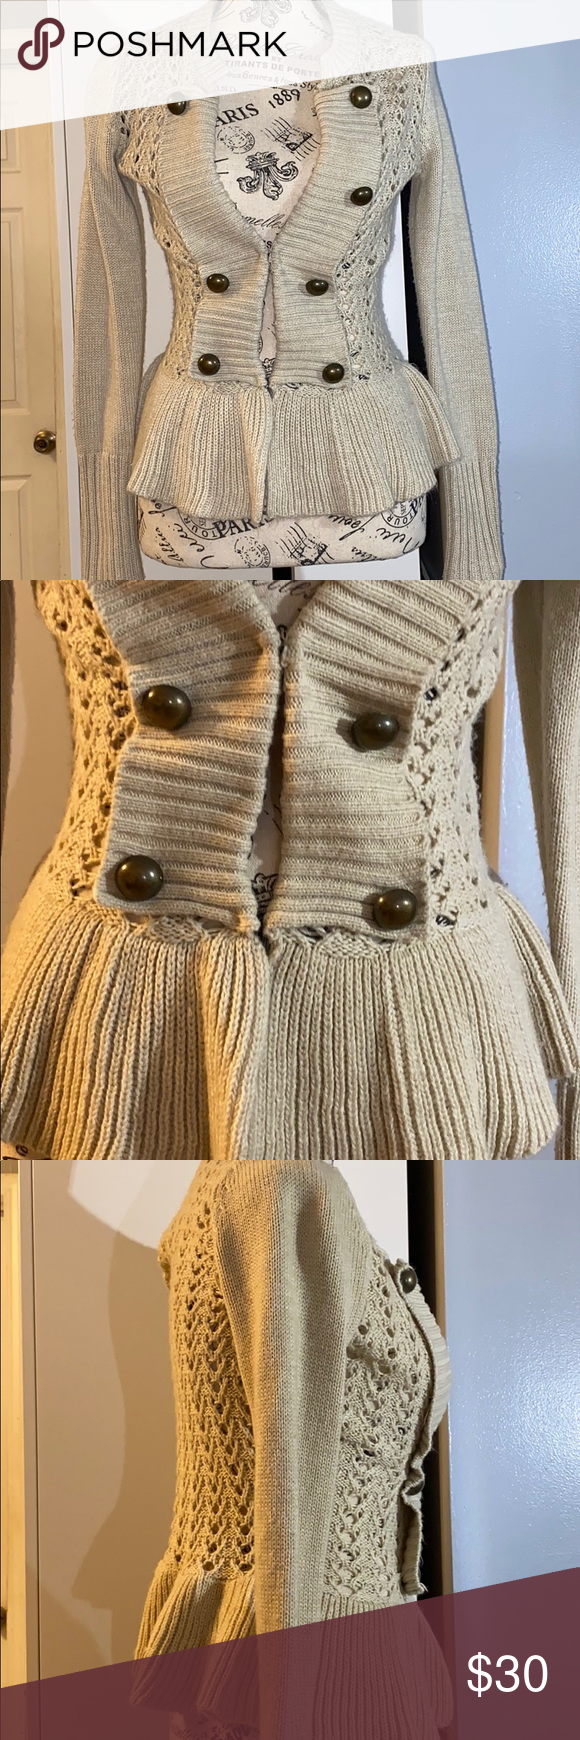 Crochet Peplum Sweater With Front Clasps In 2020 Peplum Sweater Fashion Clothes Design